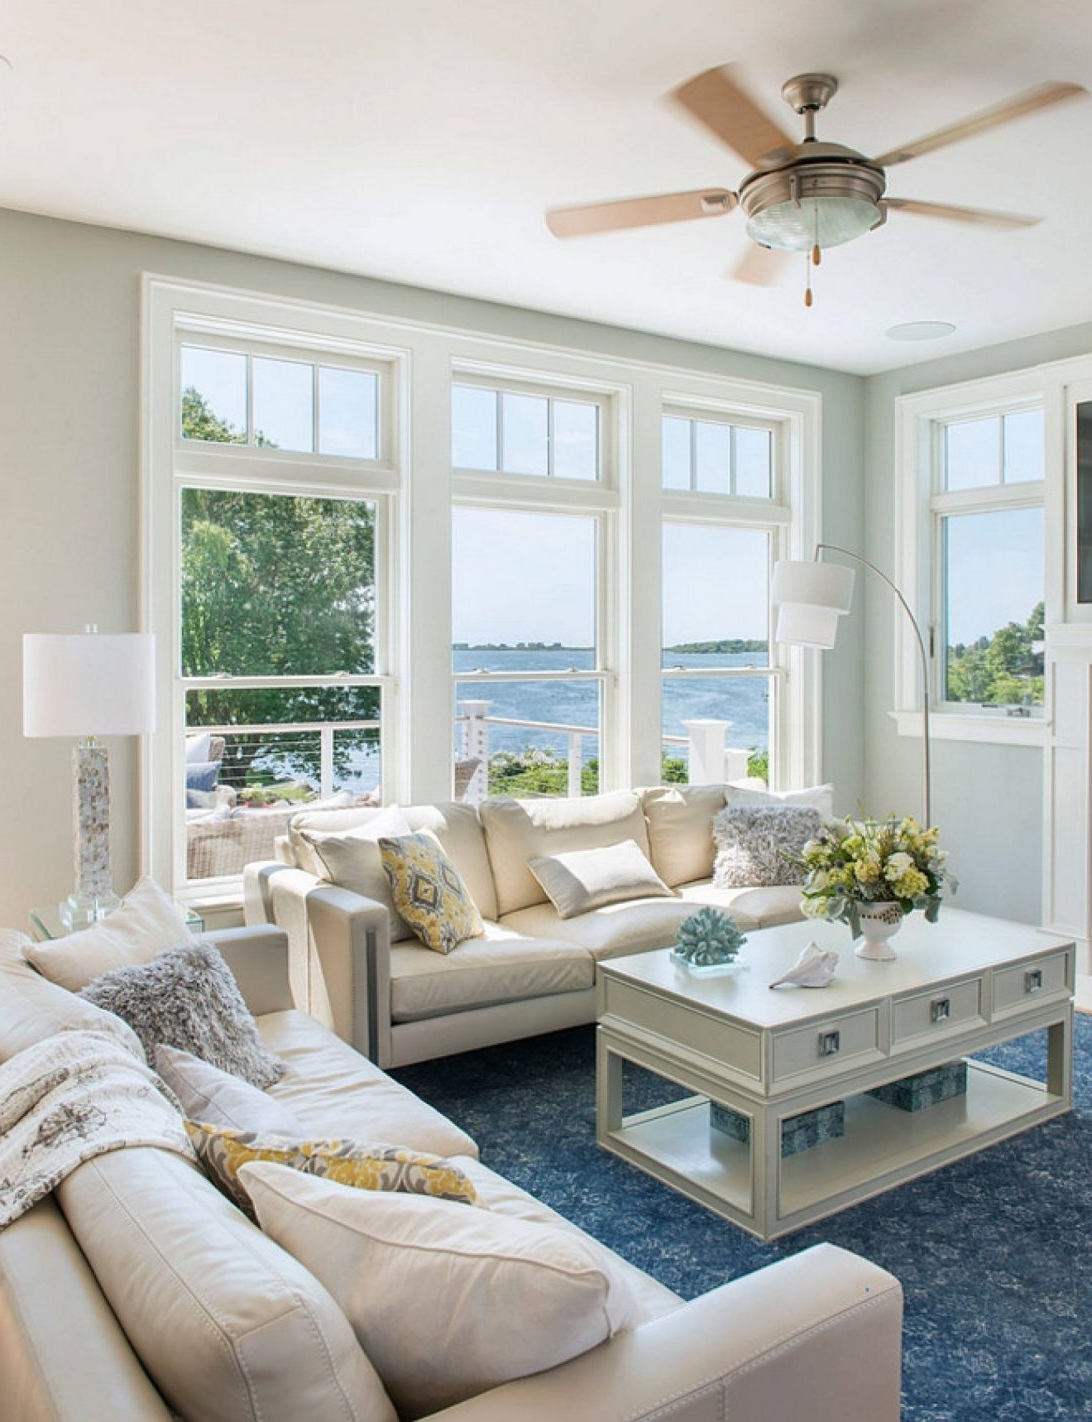 Preferred Coastal Living Room Table Lamps Throughout Beach Themed Floor Lamps Unique Nautical Coastal Living Room Ideas (View 11 of 15)